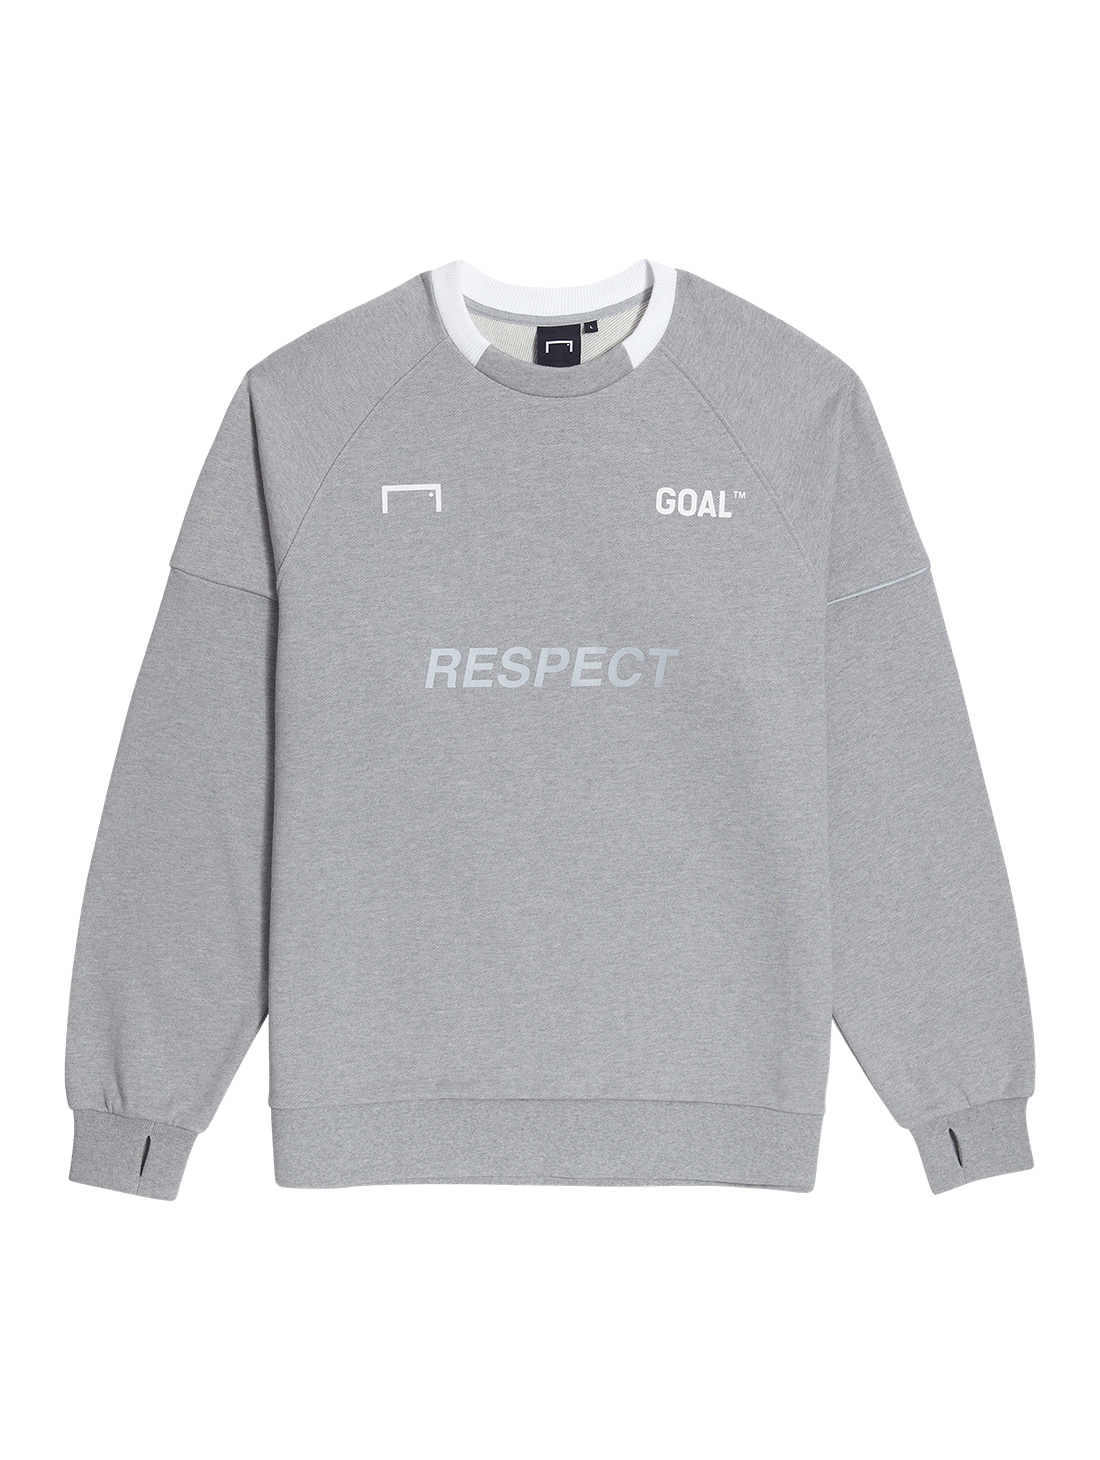 GOALSTUDIO RESPECT SWEATSHIRT - GREY